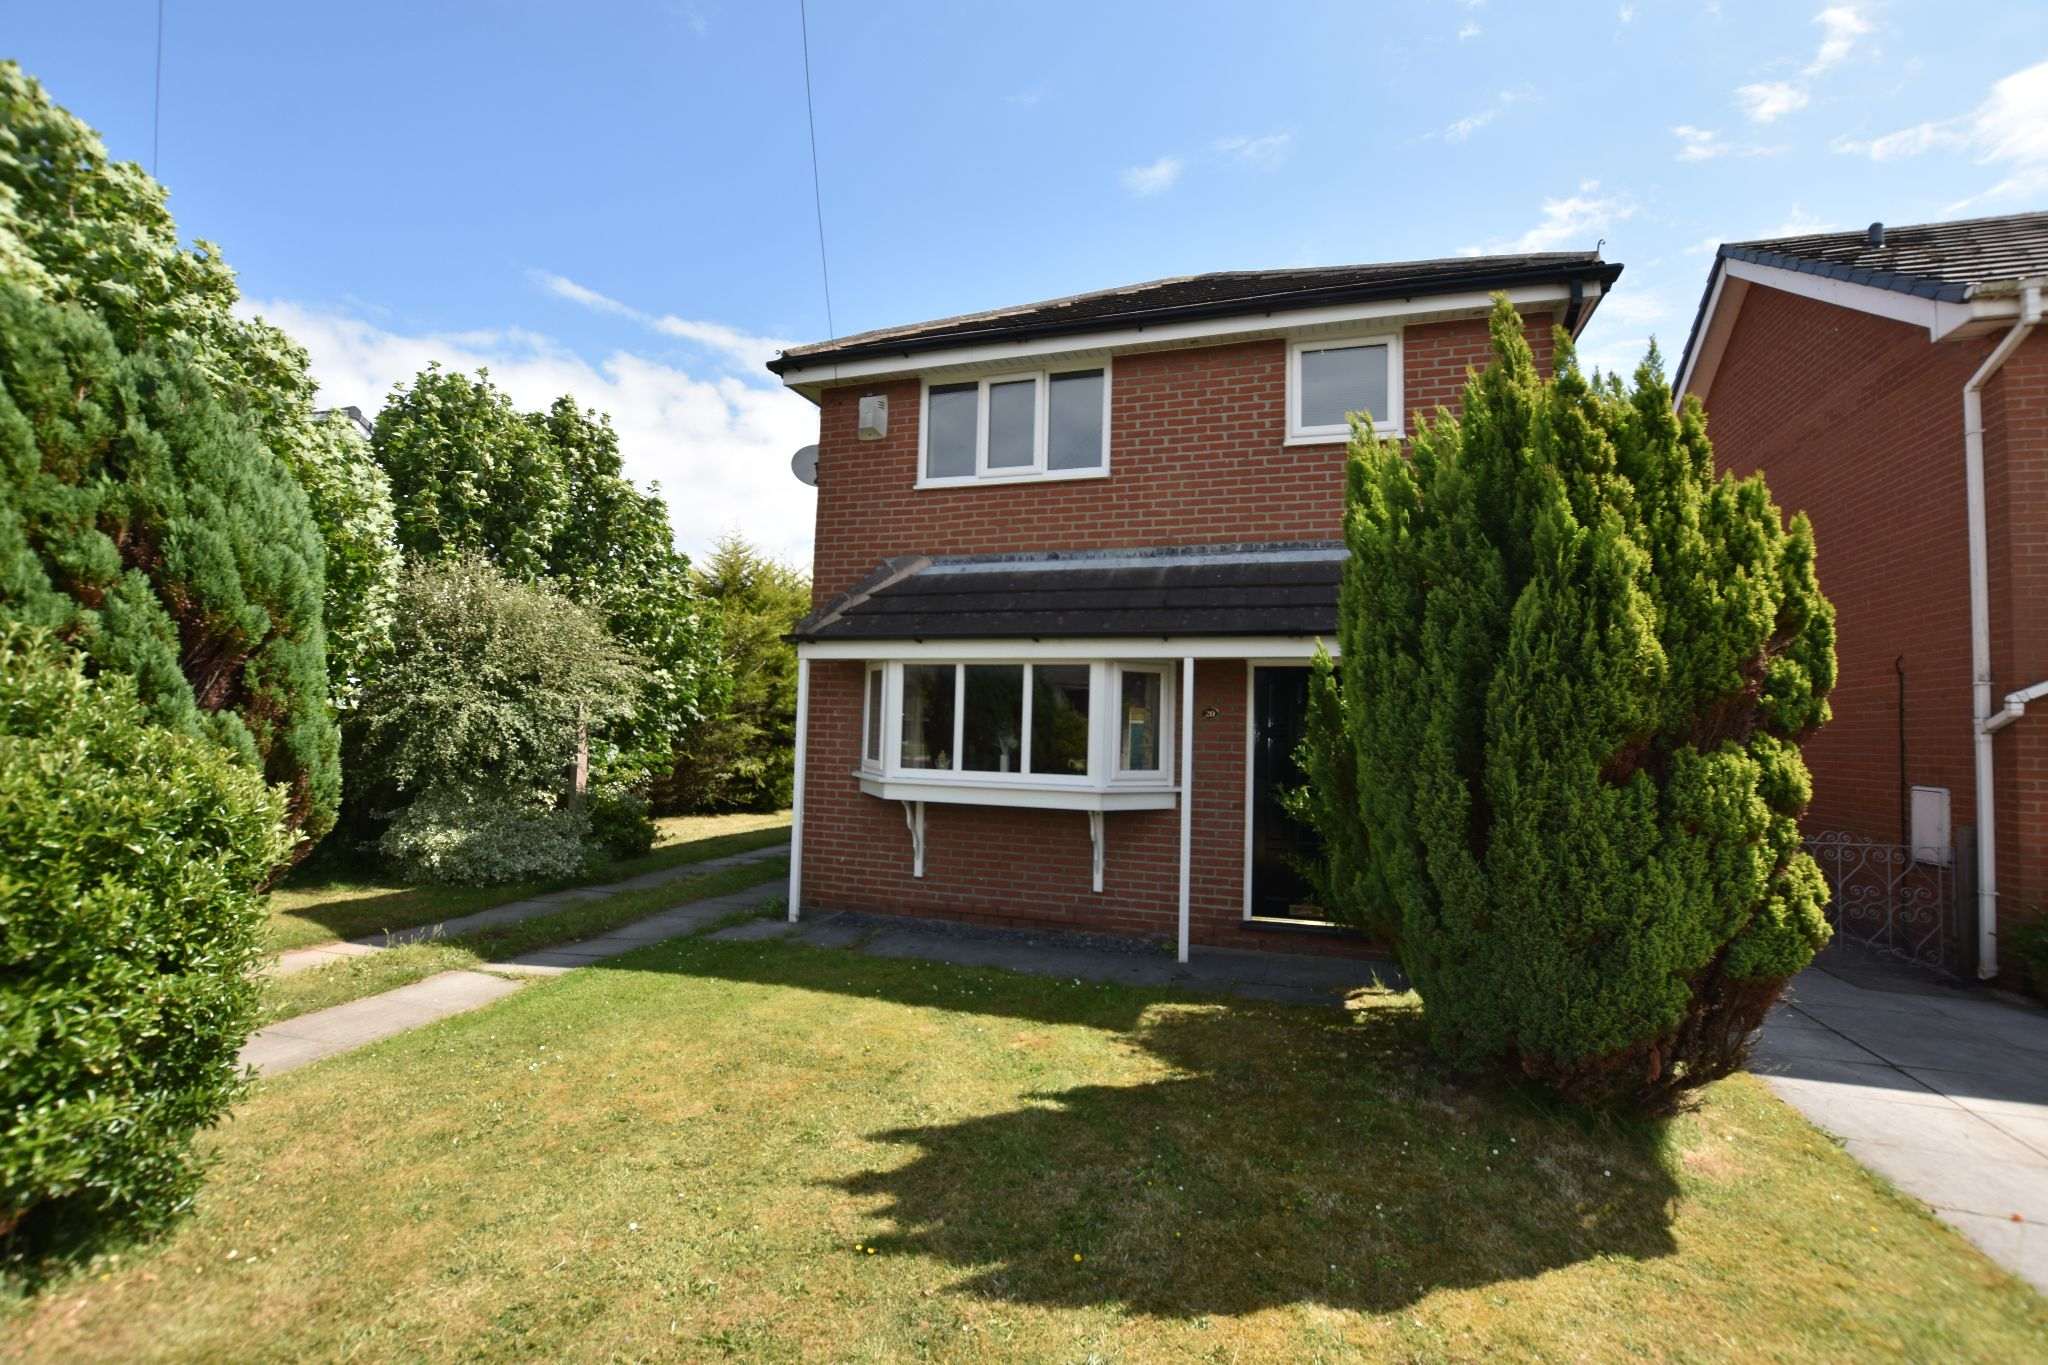 4 bedroom detached house Sold STC in Preston - Croft Butts Lane